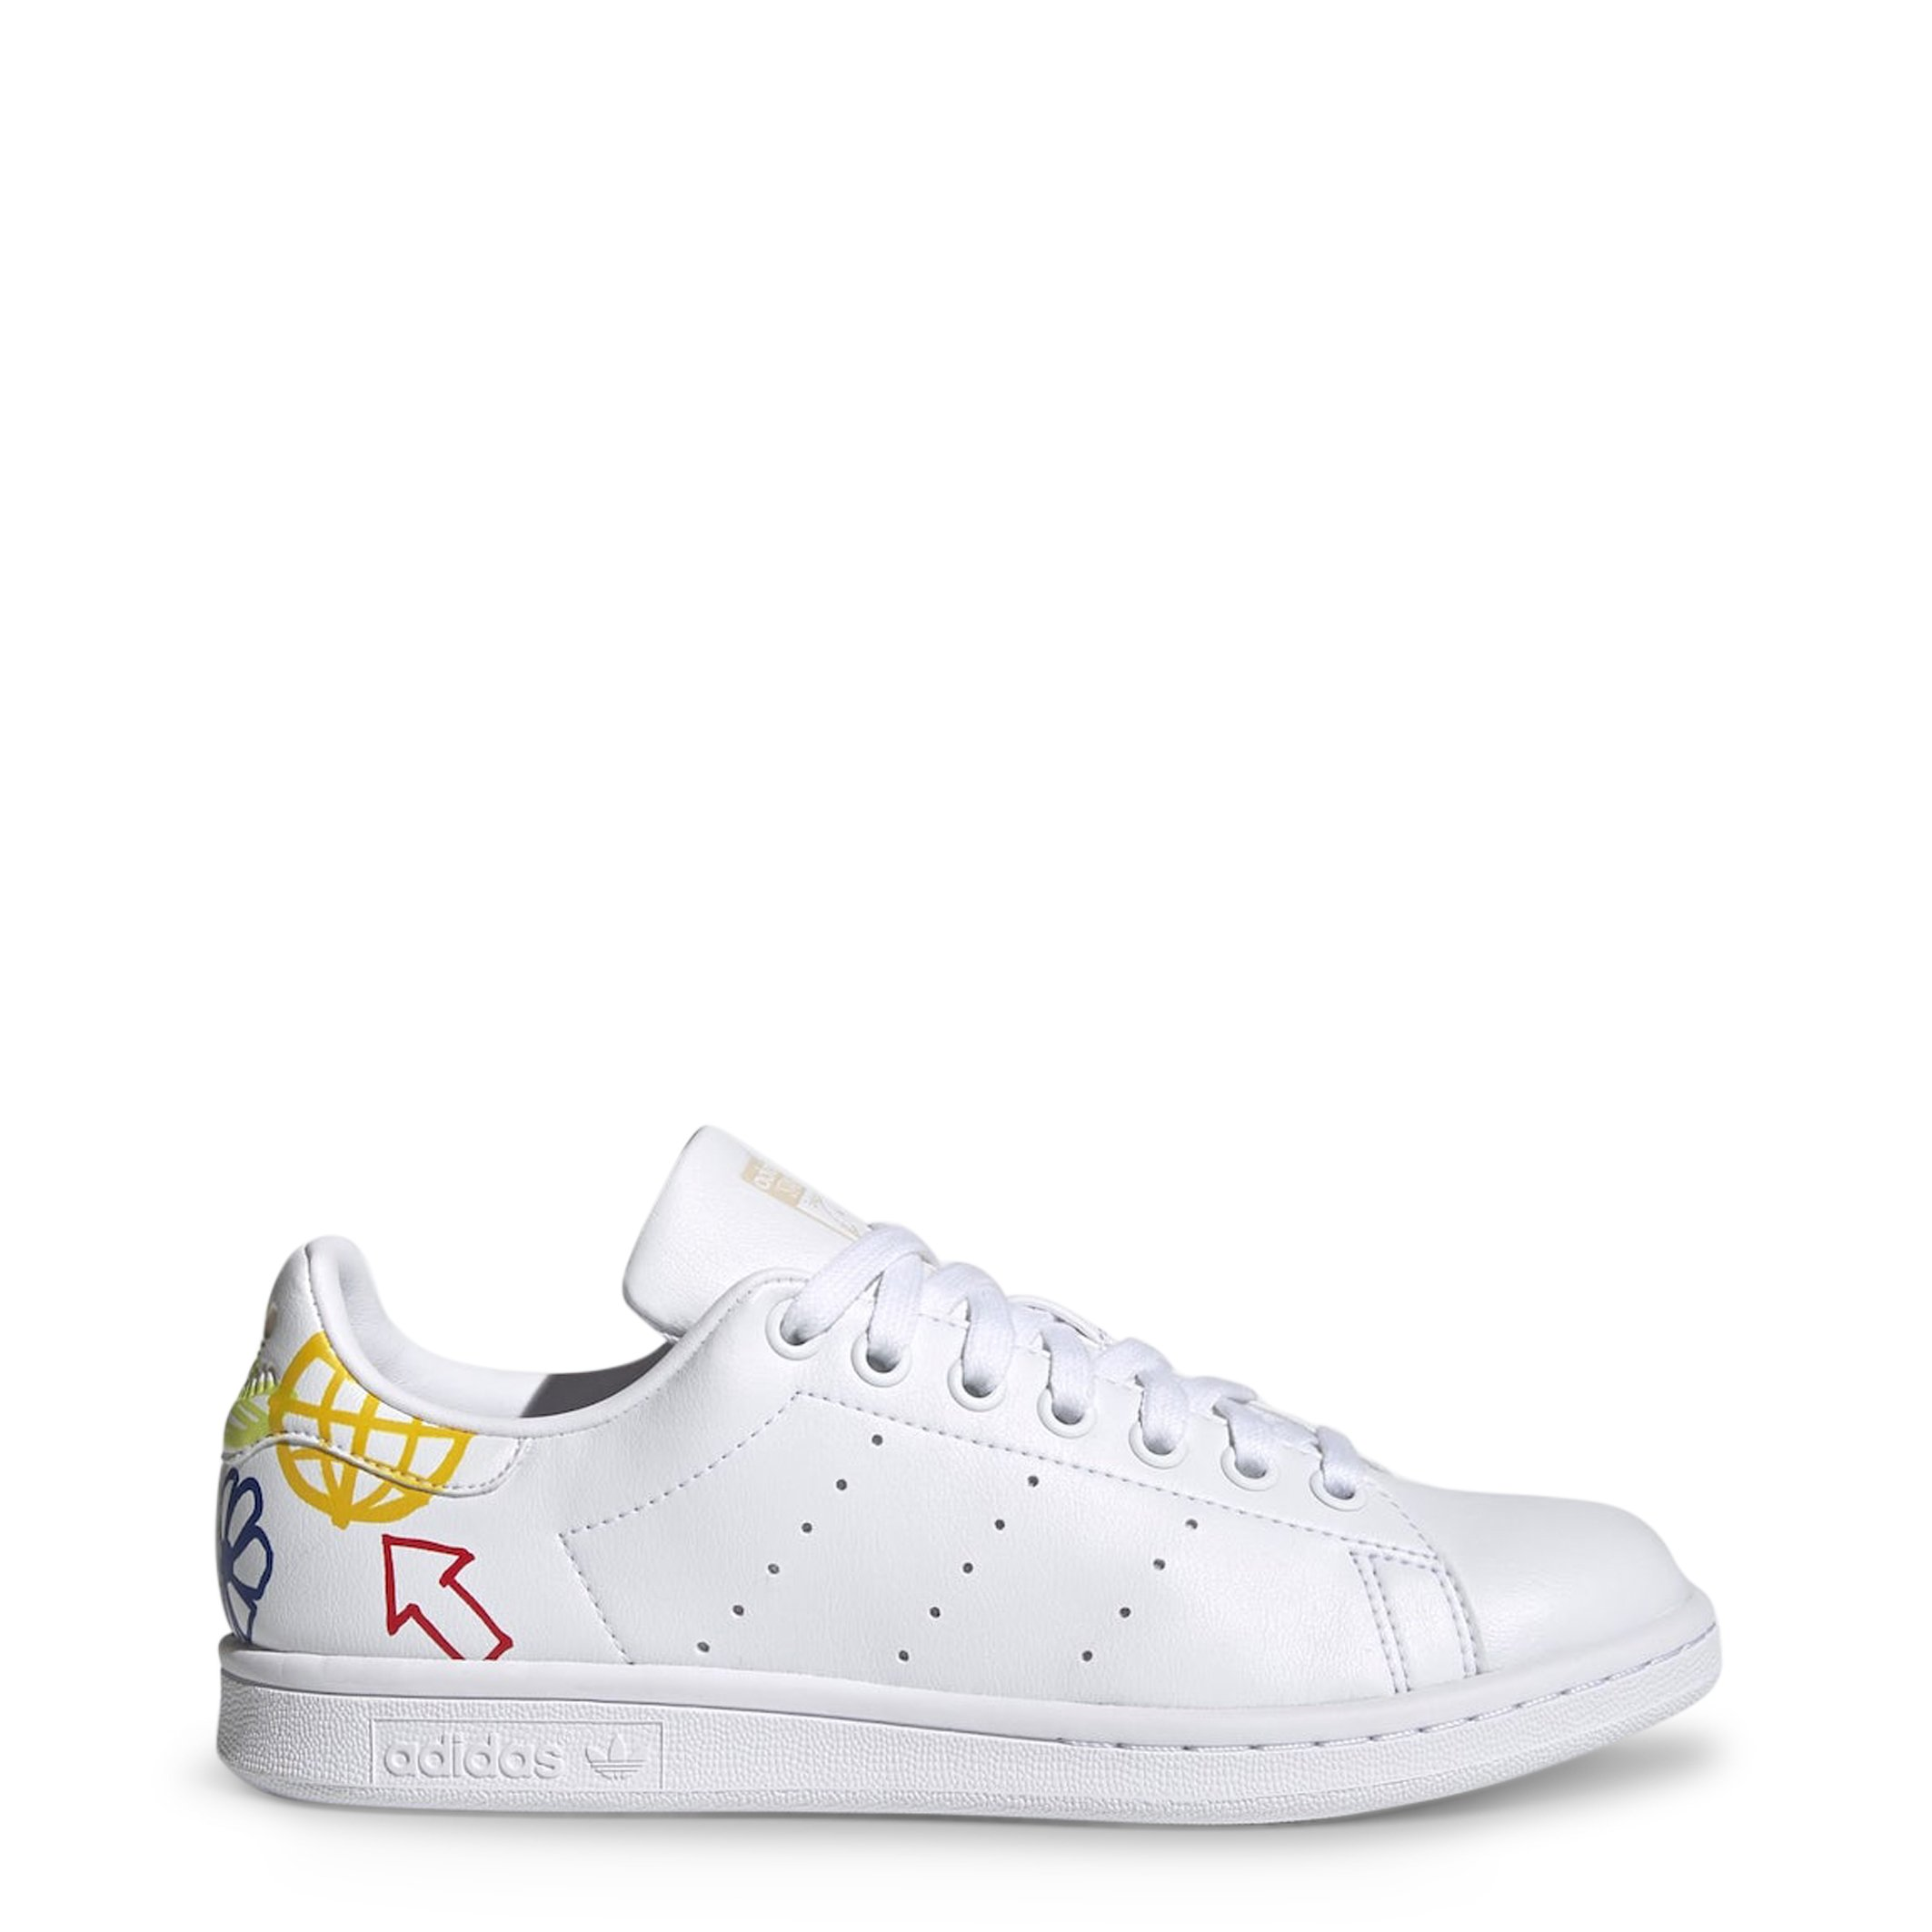 Adidas Unisex Stan Smith Trainers Various Colours - white-6 UK 3.5